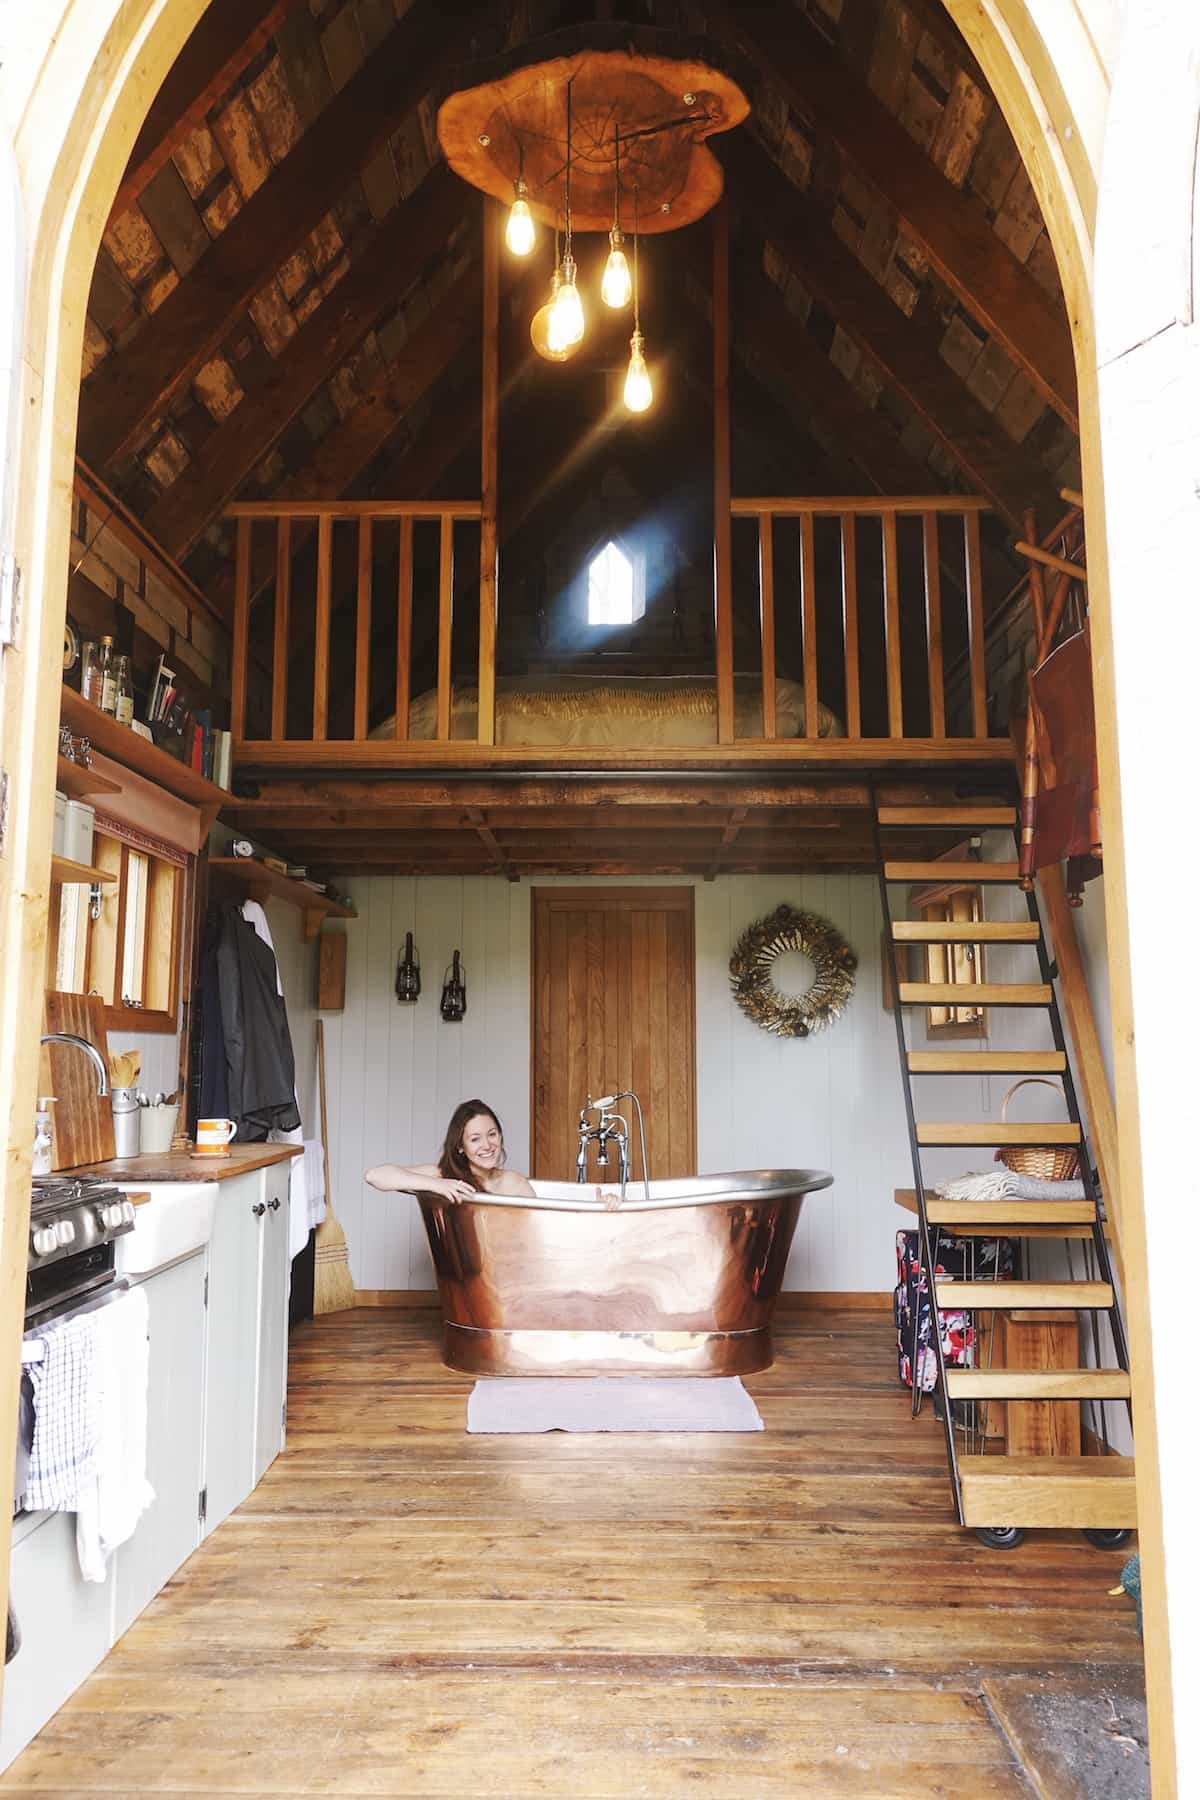 hesley huts holly bathtub